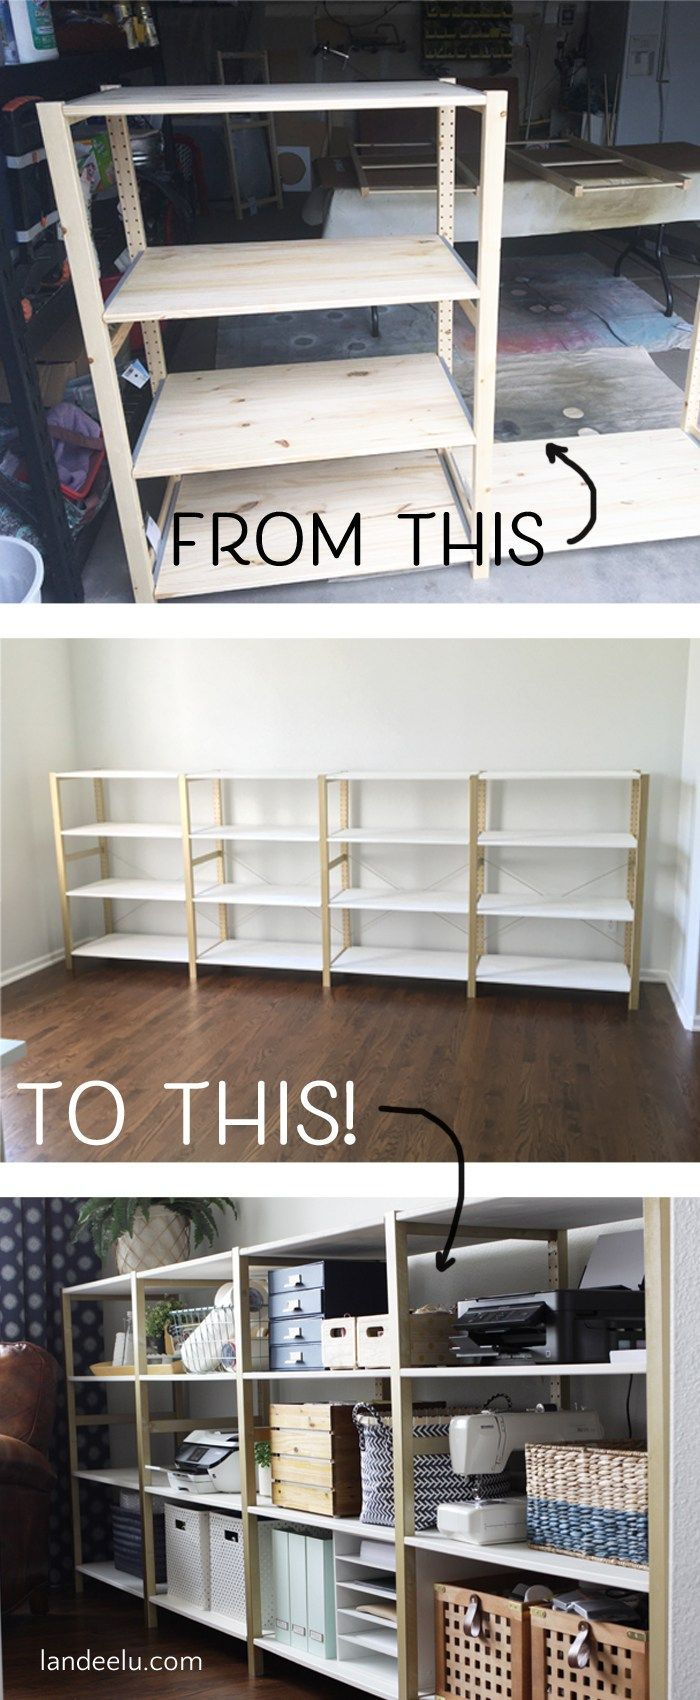 office shelves ikea. over 11 linear feet of chic shelving made from super cheap ikea storage shelves! this office shelves ikea i